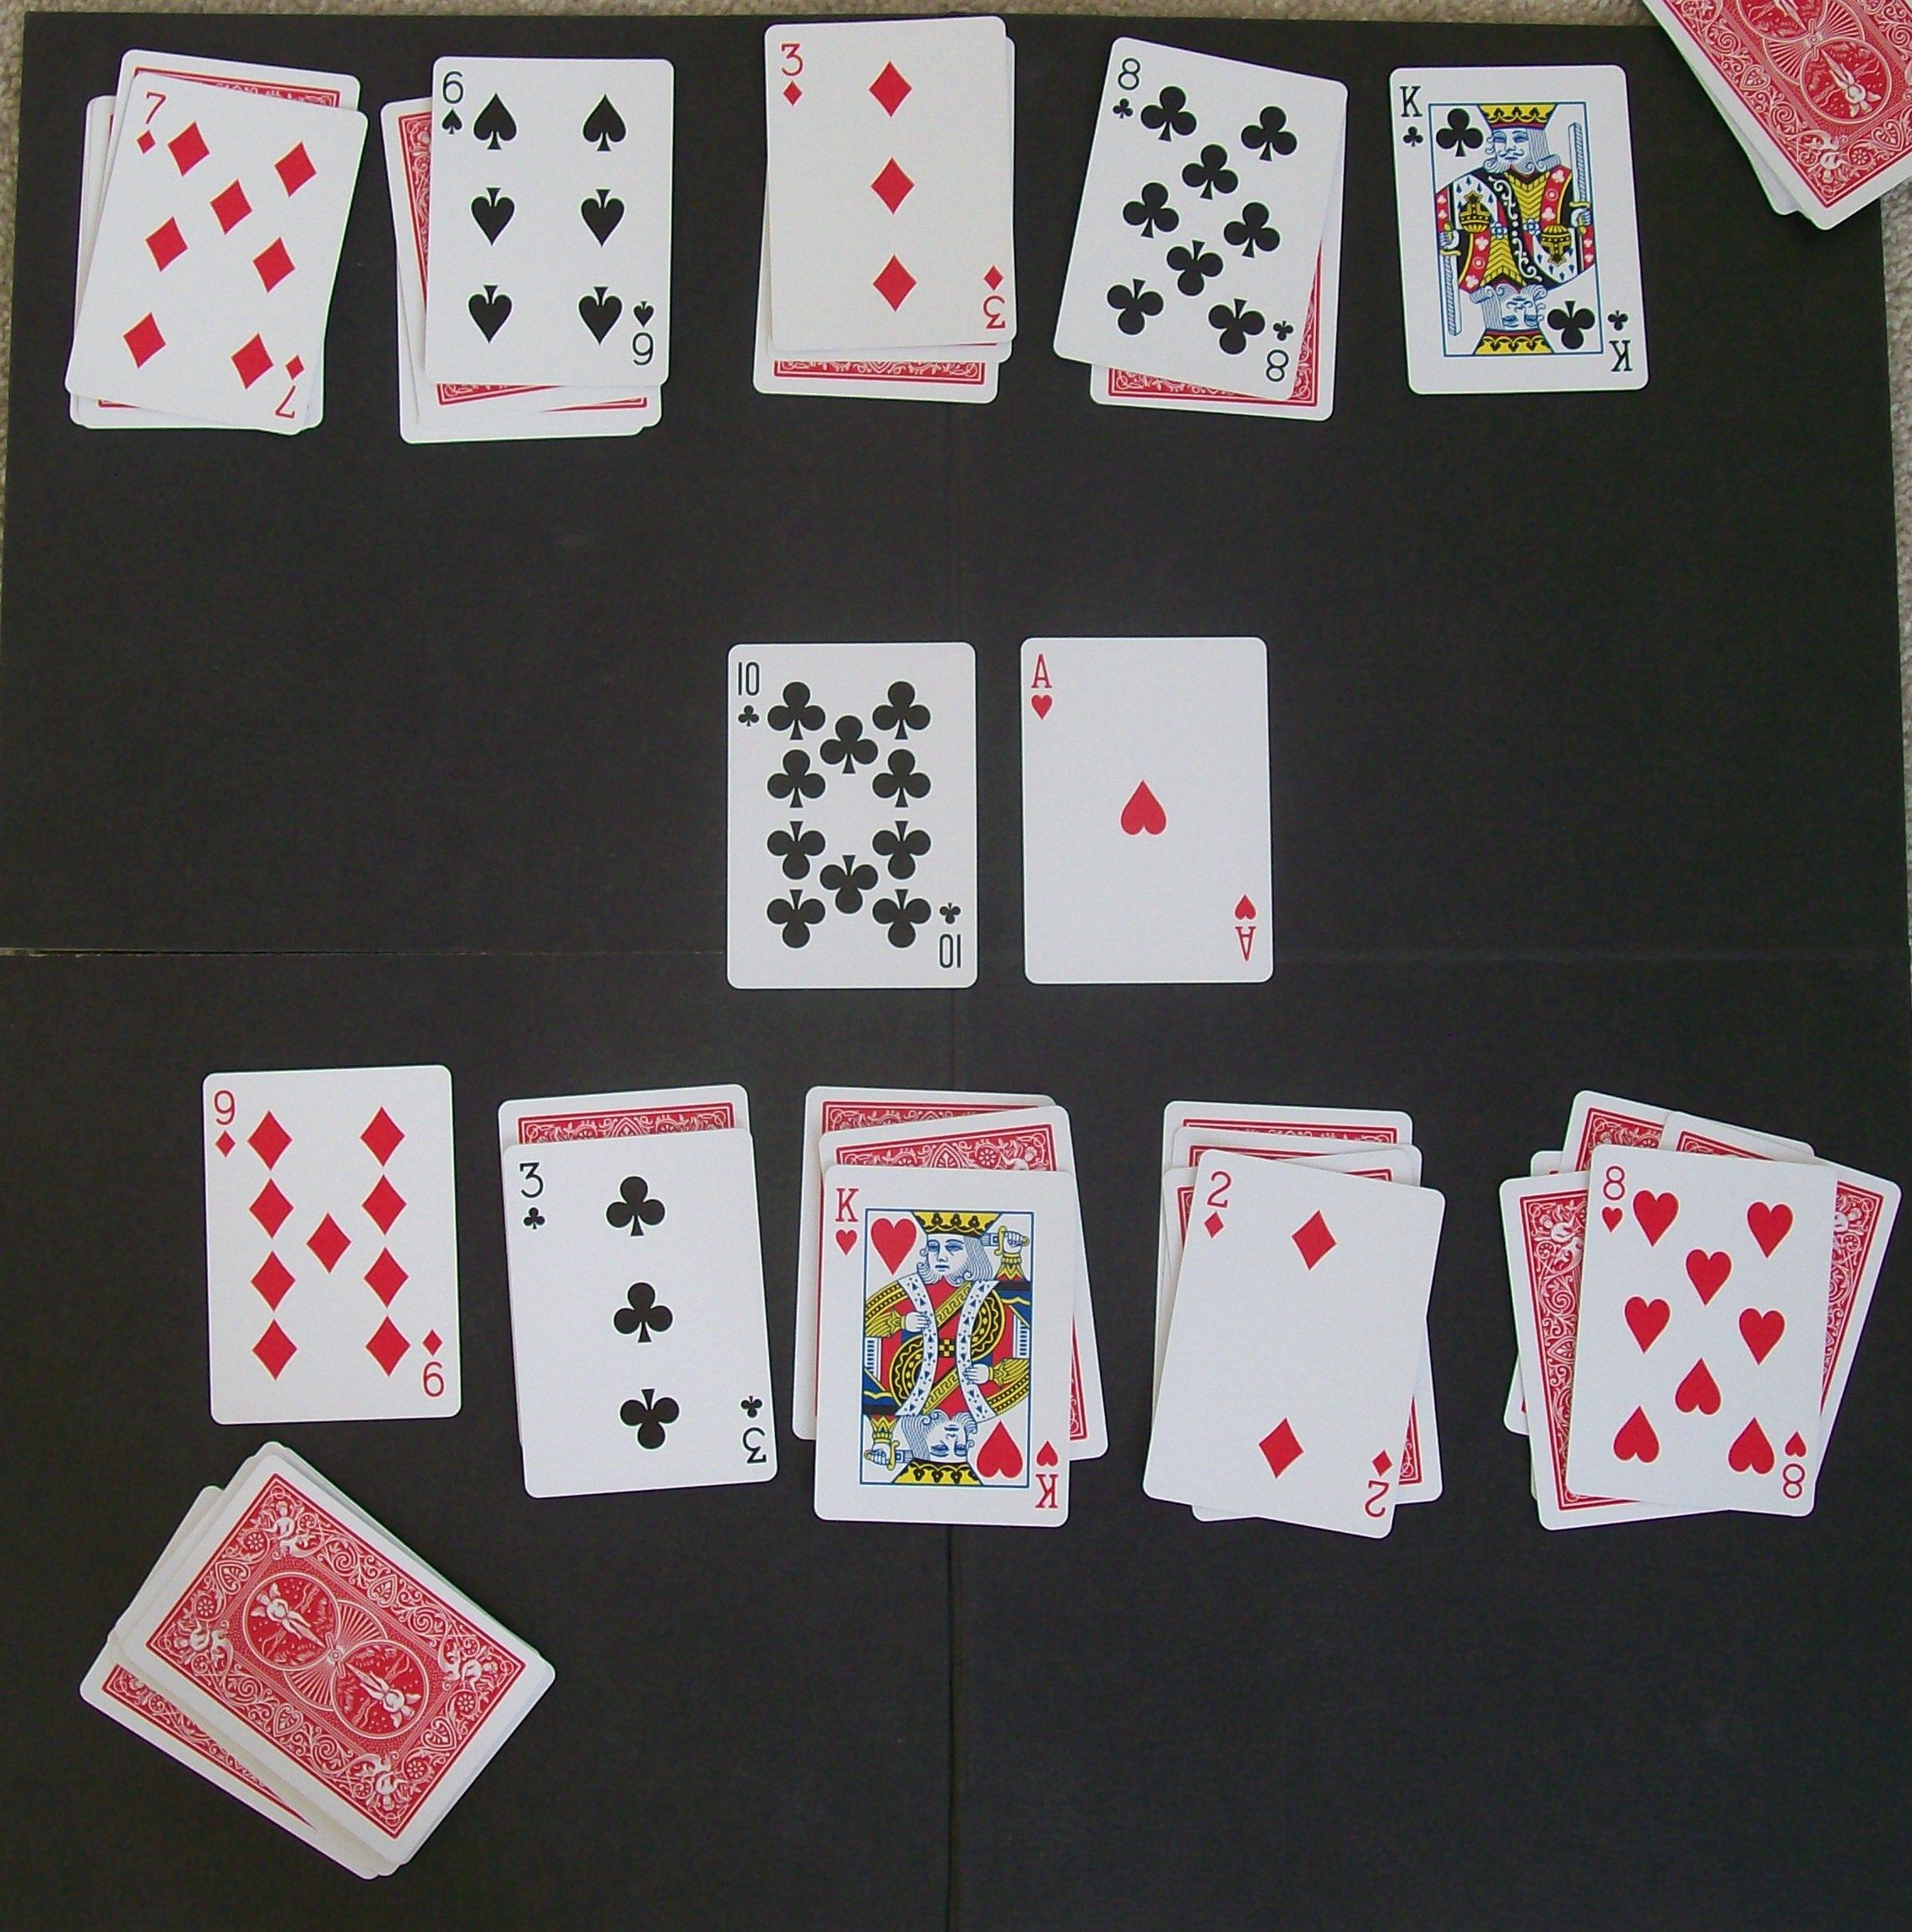 Spit The Card Game My Sister And I Would Play This For Hours